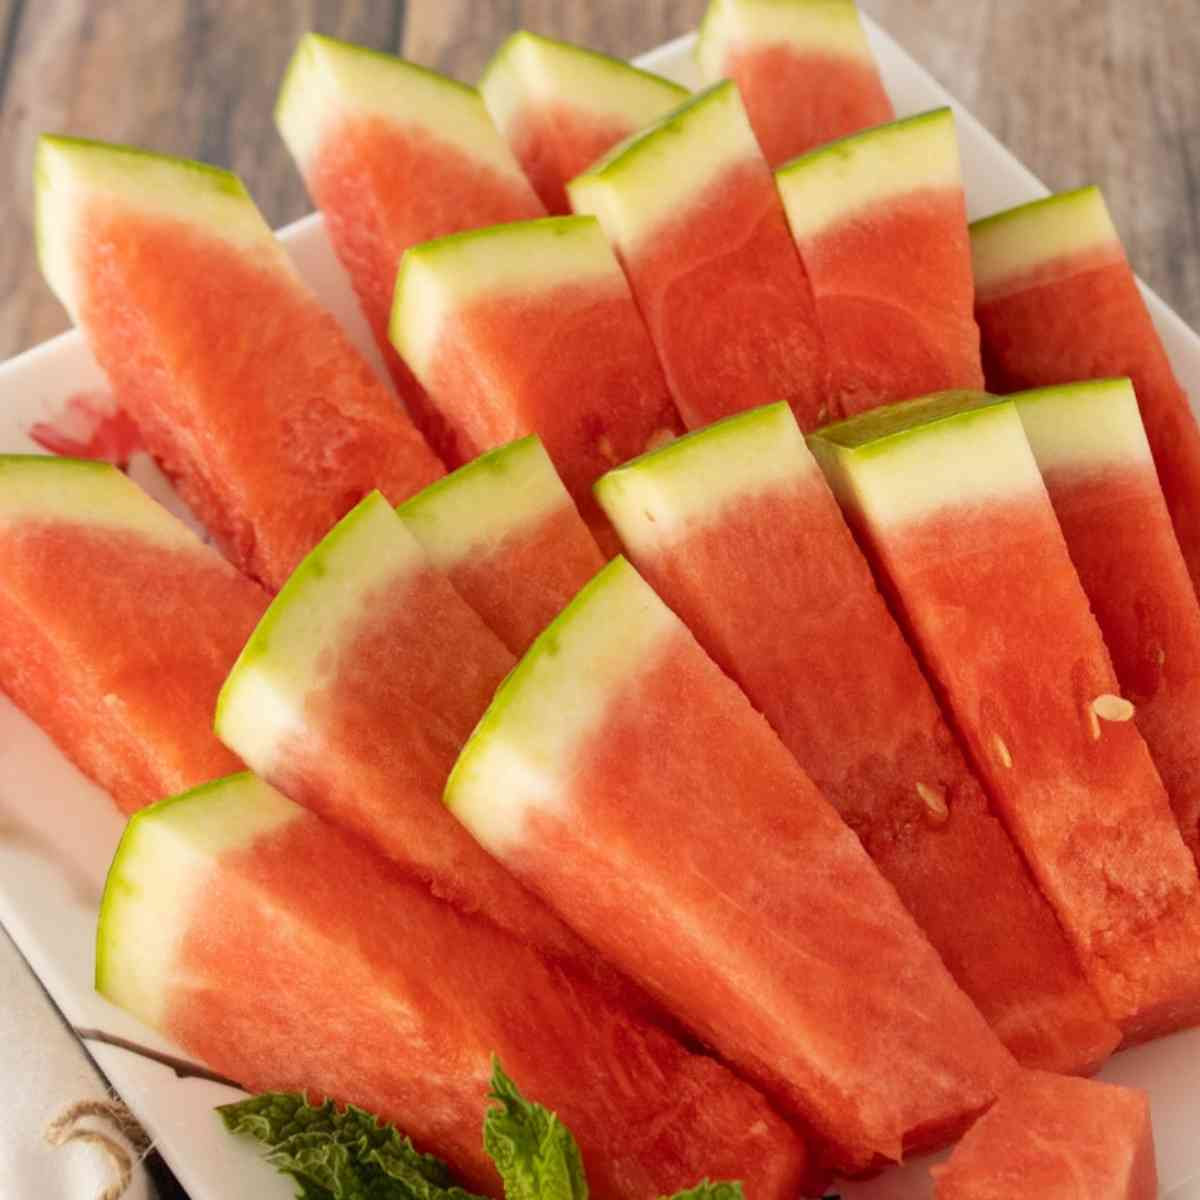 Watermelon sticks arranged for a picnic or party.